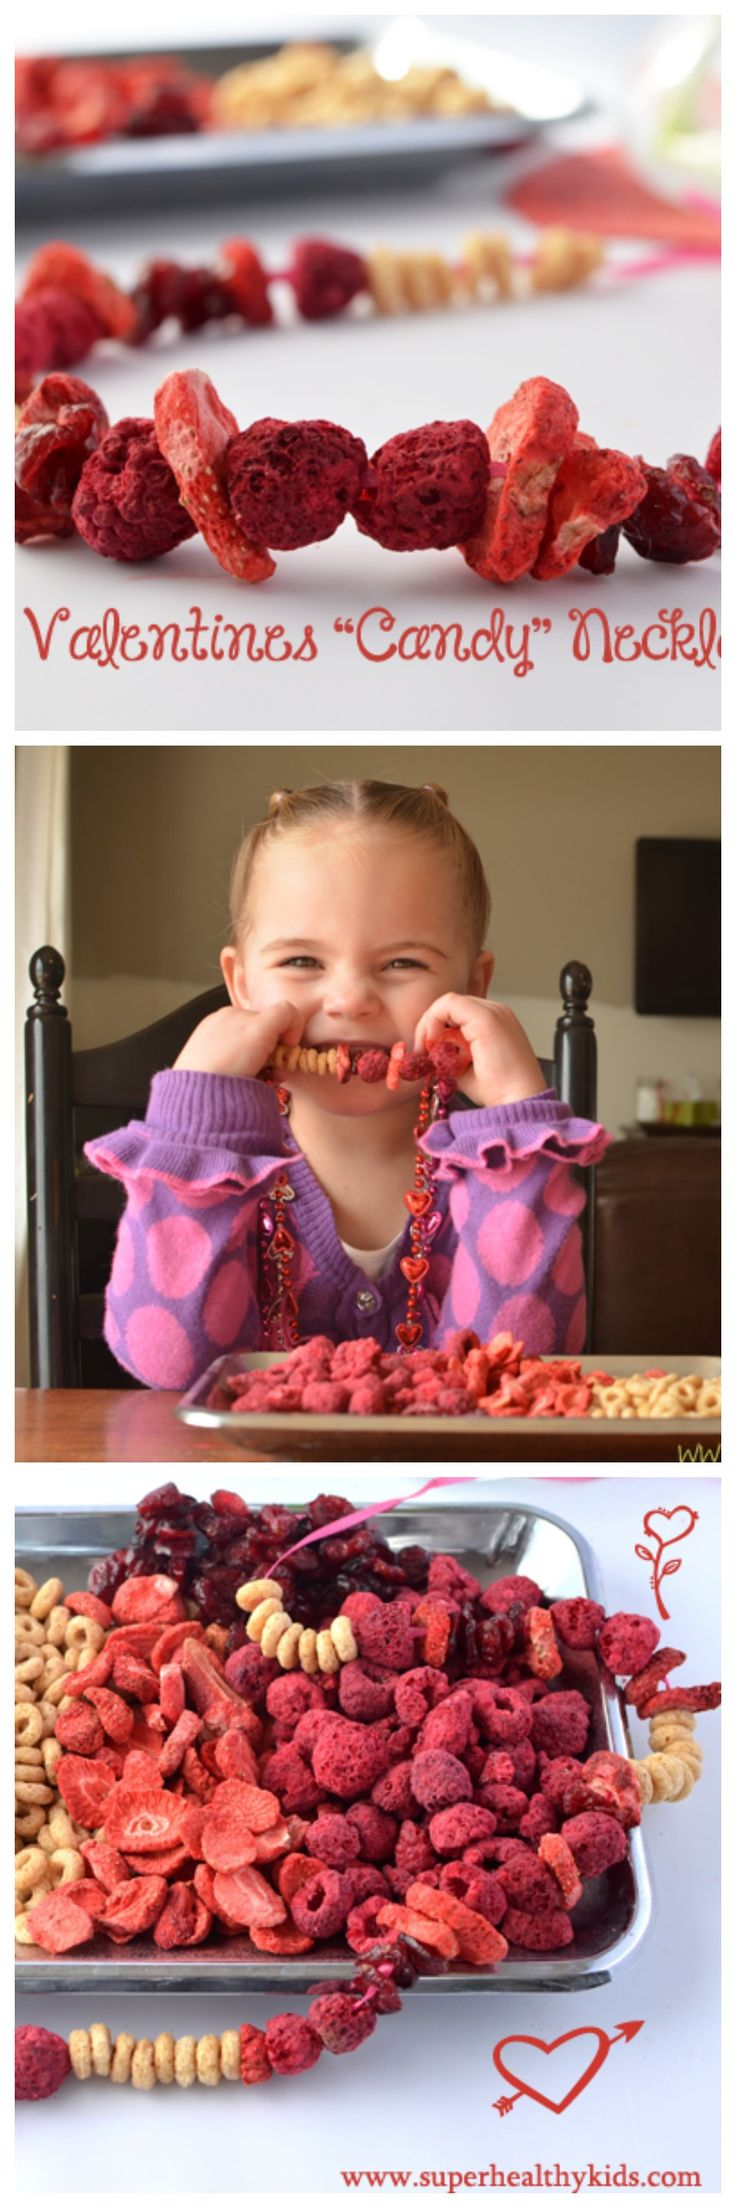 This candy necklace is sweet without sugar! www.superhealthykids.com